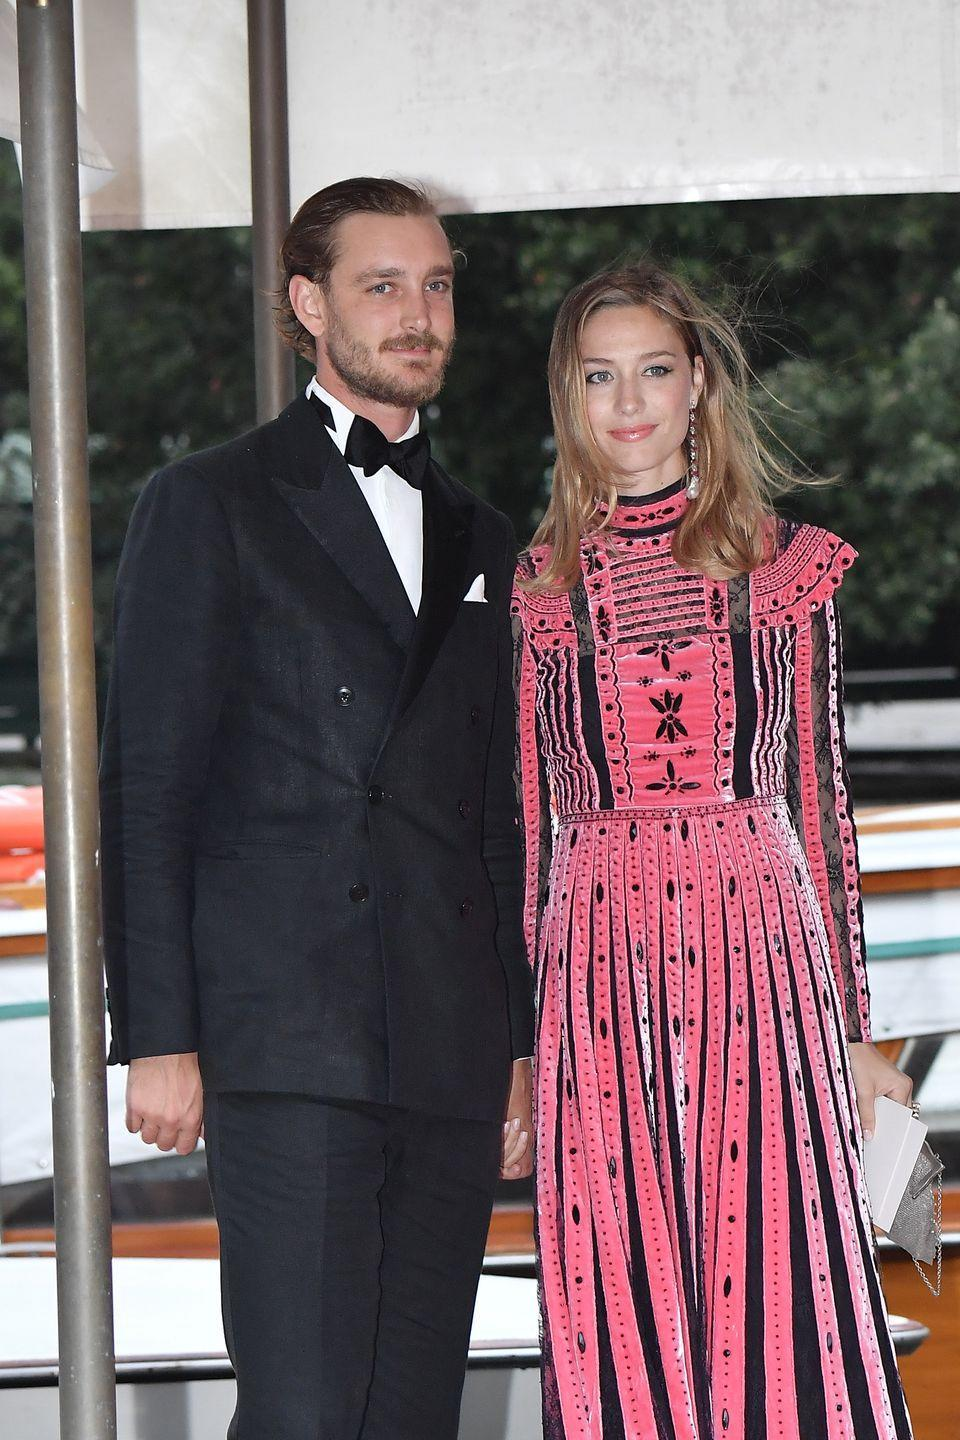 <p>Grace Kelly's grandson is currently the seventh in line to the Monegasque throne. In 2015, Pierre tied the knot with journalist Beatrice Borromeo, who gave birth to the couple's first child, a son named Stefano (after Pierre's late father), in early 2017.</p>